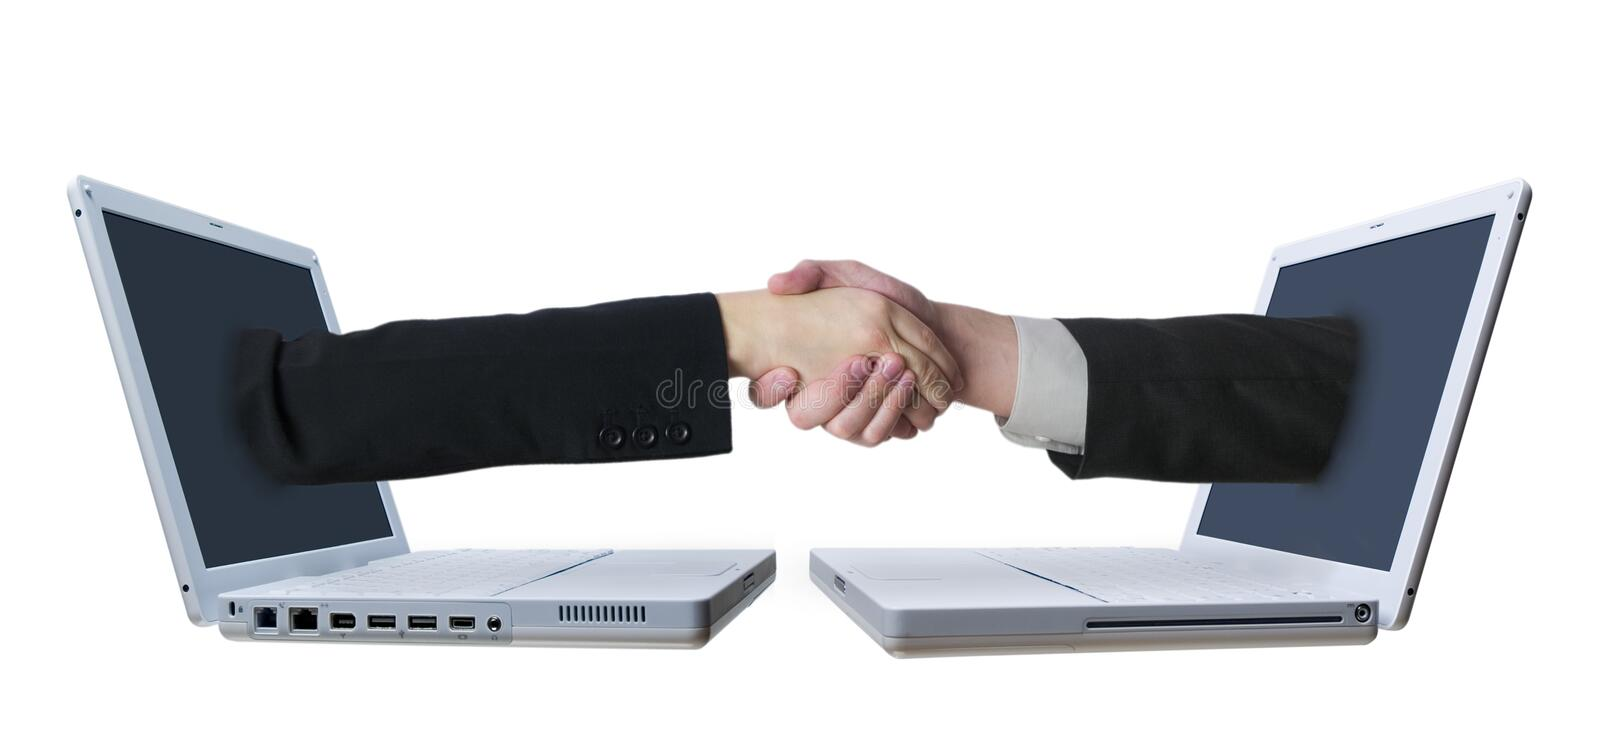 Download Laptop Handshake 2 stock image. Image of portability, fingers - 717635